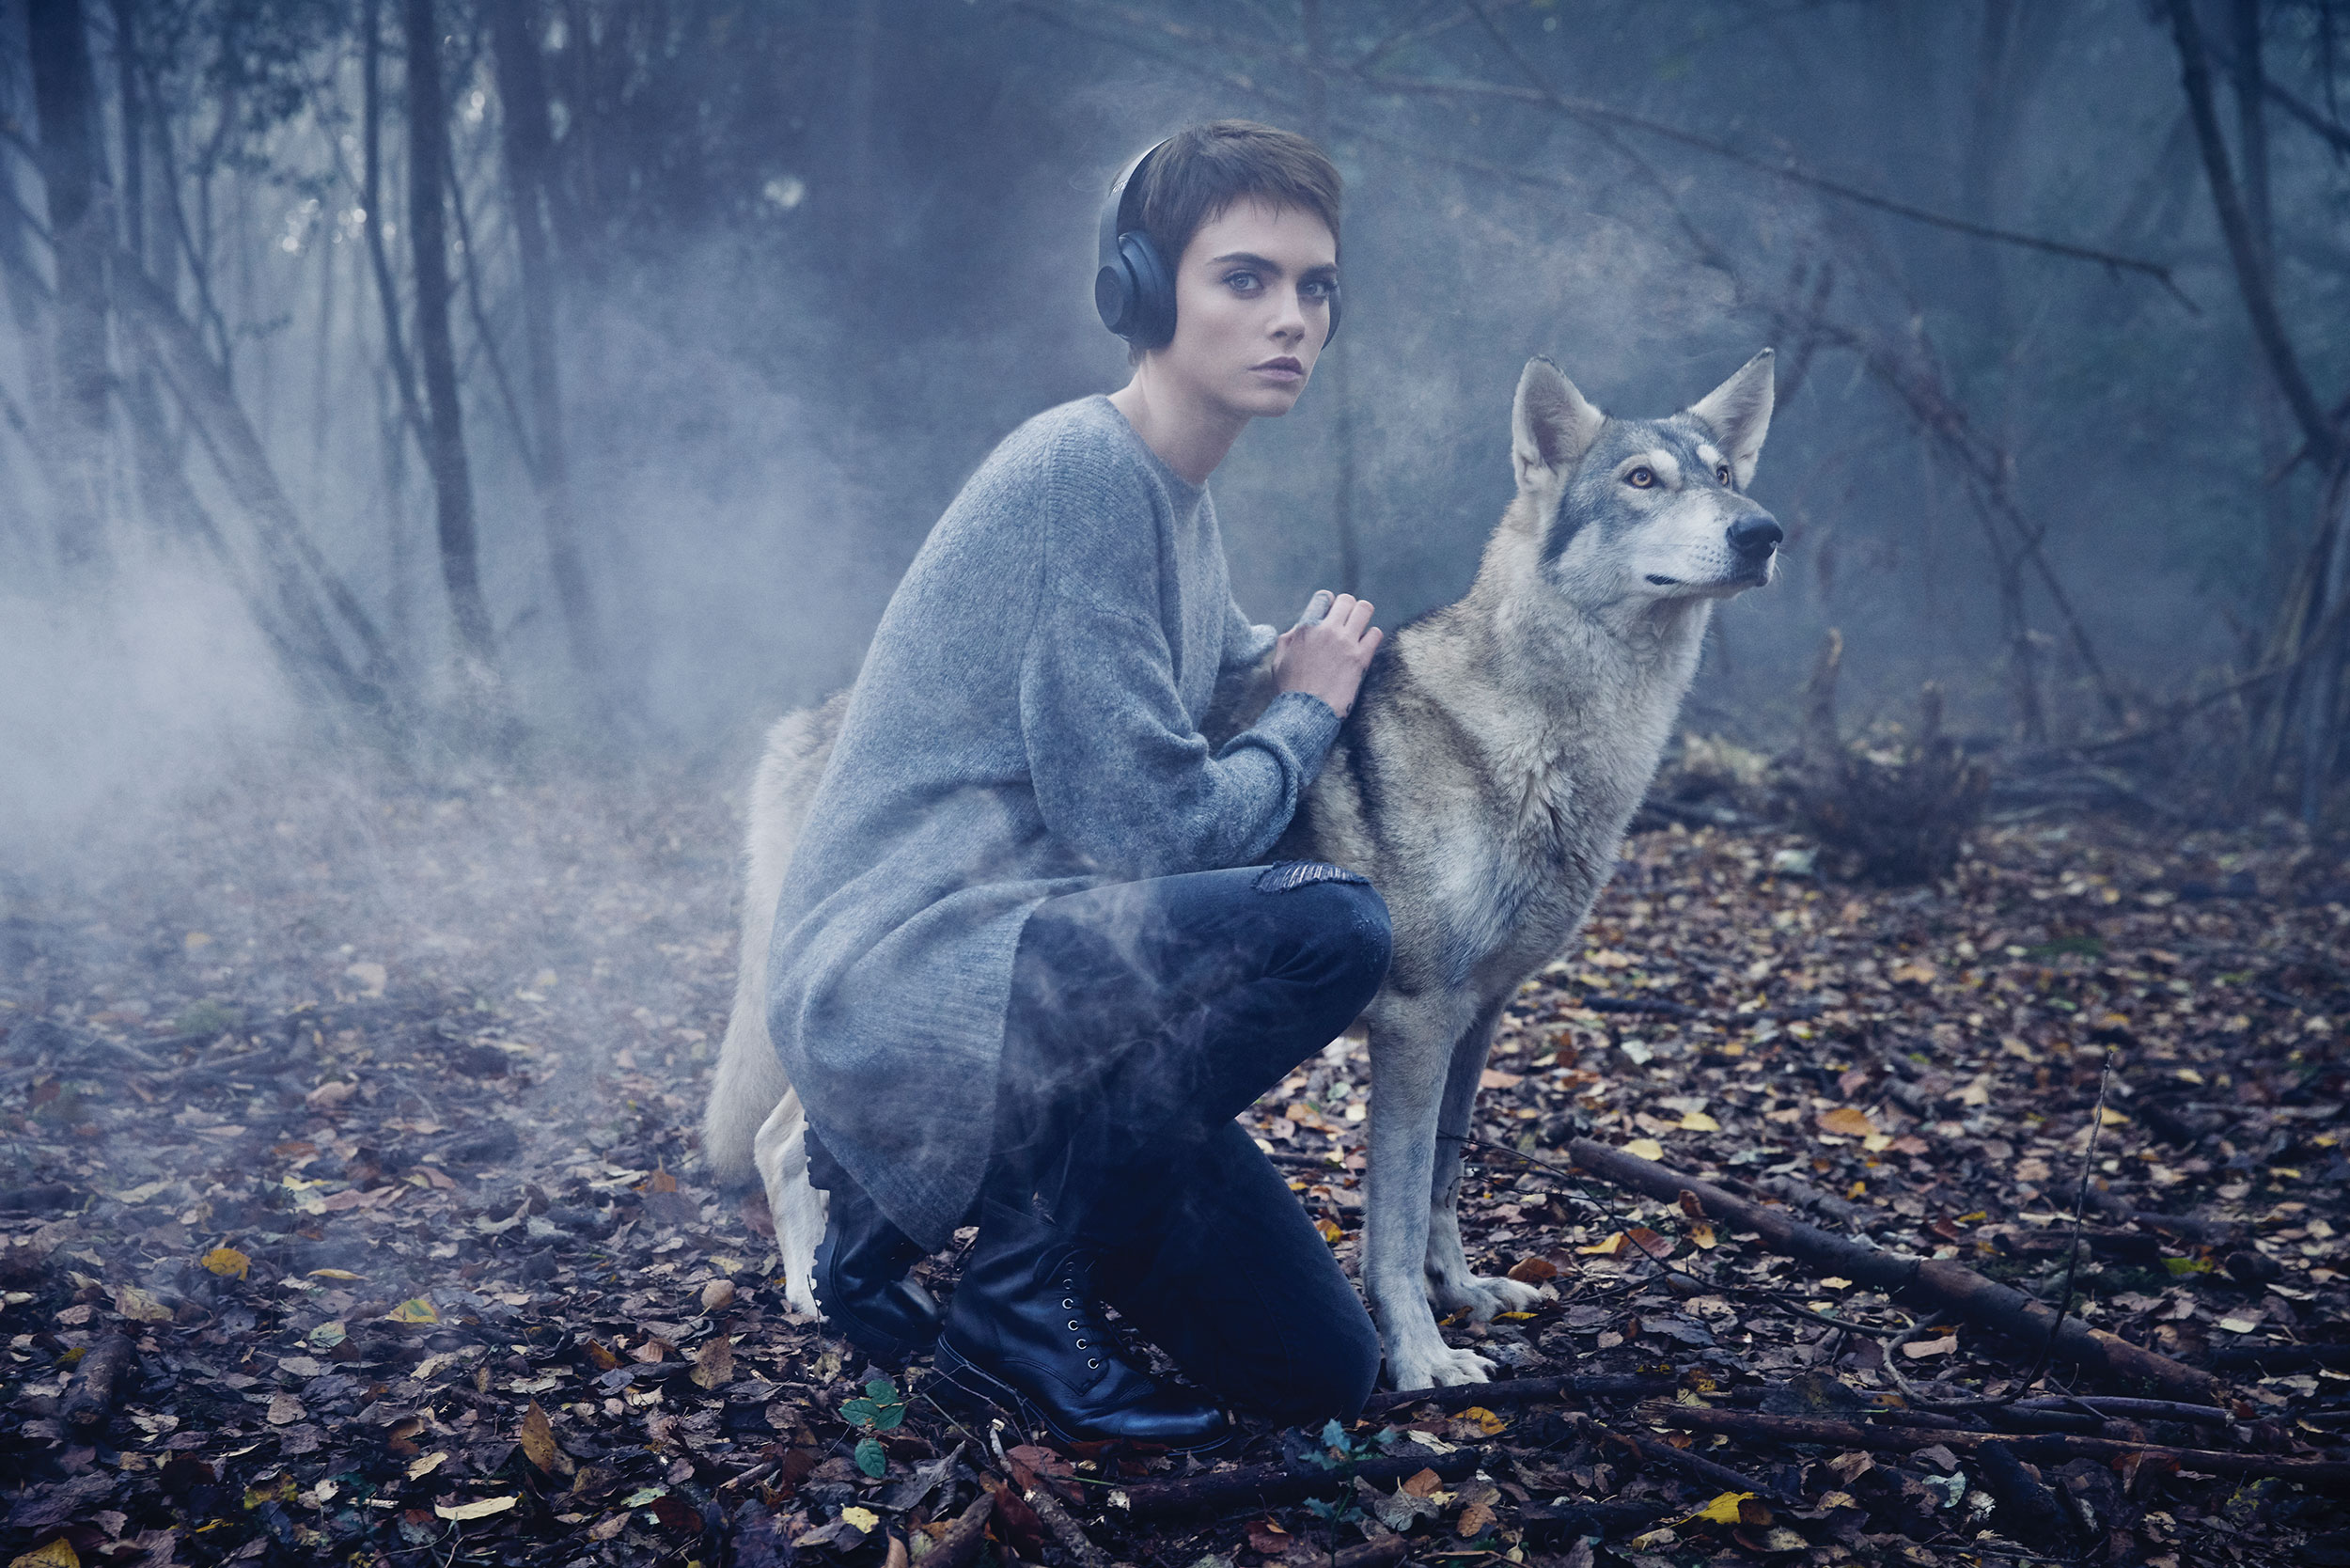 SATN_CARA_DELEVINGNE_SW_BLACK_WOODS_WOLF_WITH_HEADPHONES_051